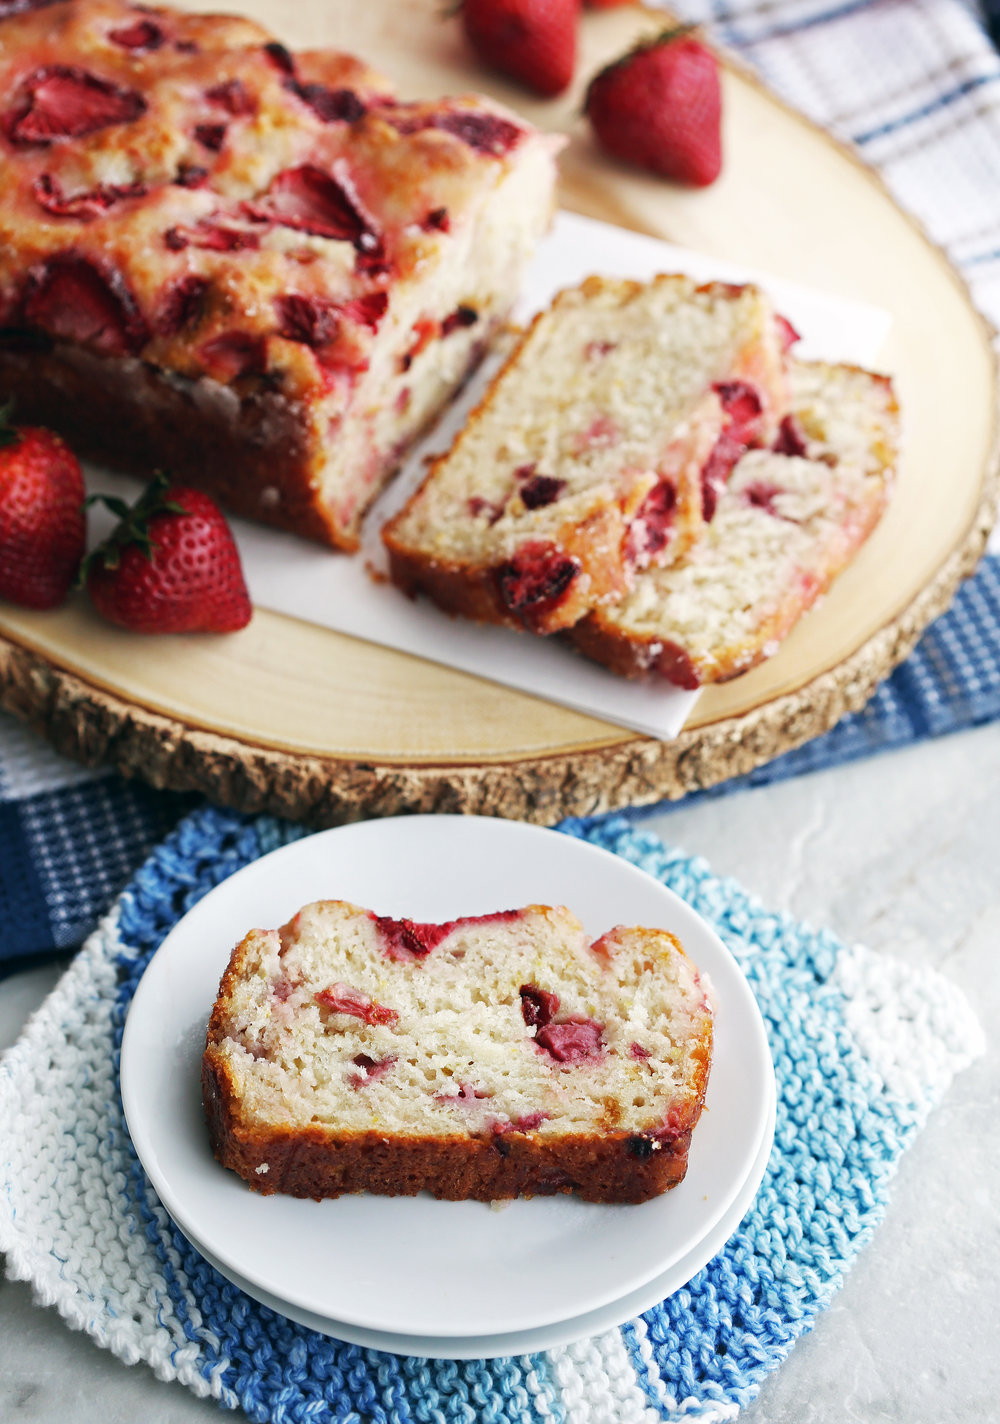 A slice of Strawberry Lemon Yogurt Quick Bread on a small white plate with the loaf in the background.